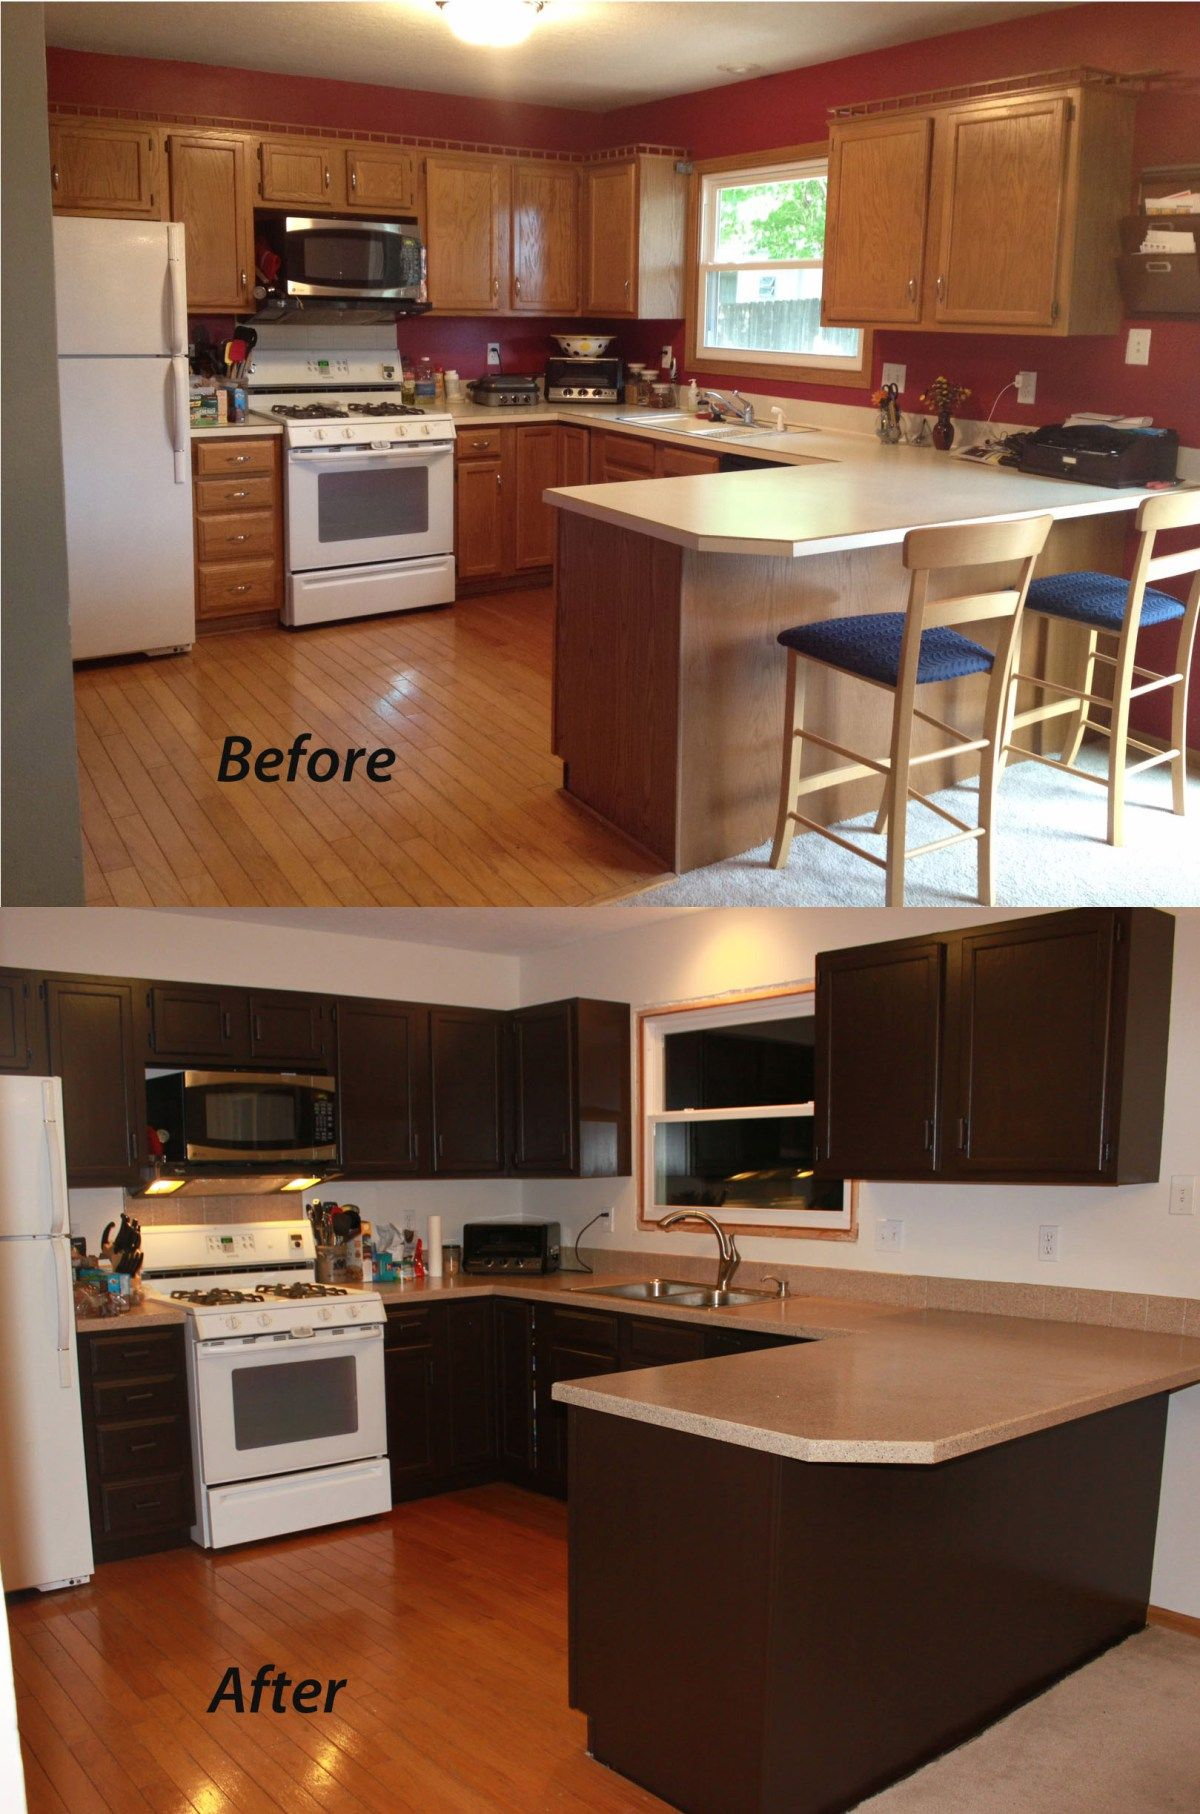 Painting Kitchen Cabinets Sometimes Homemade Painting Kitchen Cabinets Kitchen Cabinets Painted Before And After Brown Kitchen Cabinets